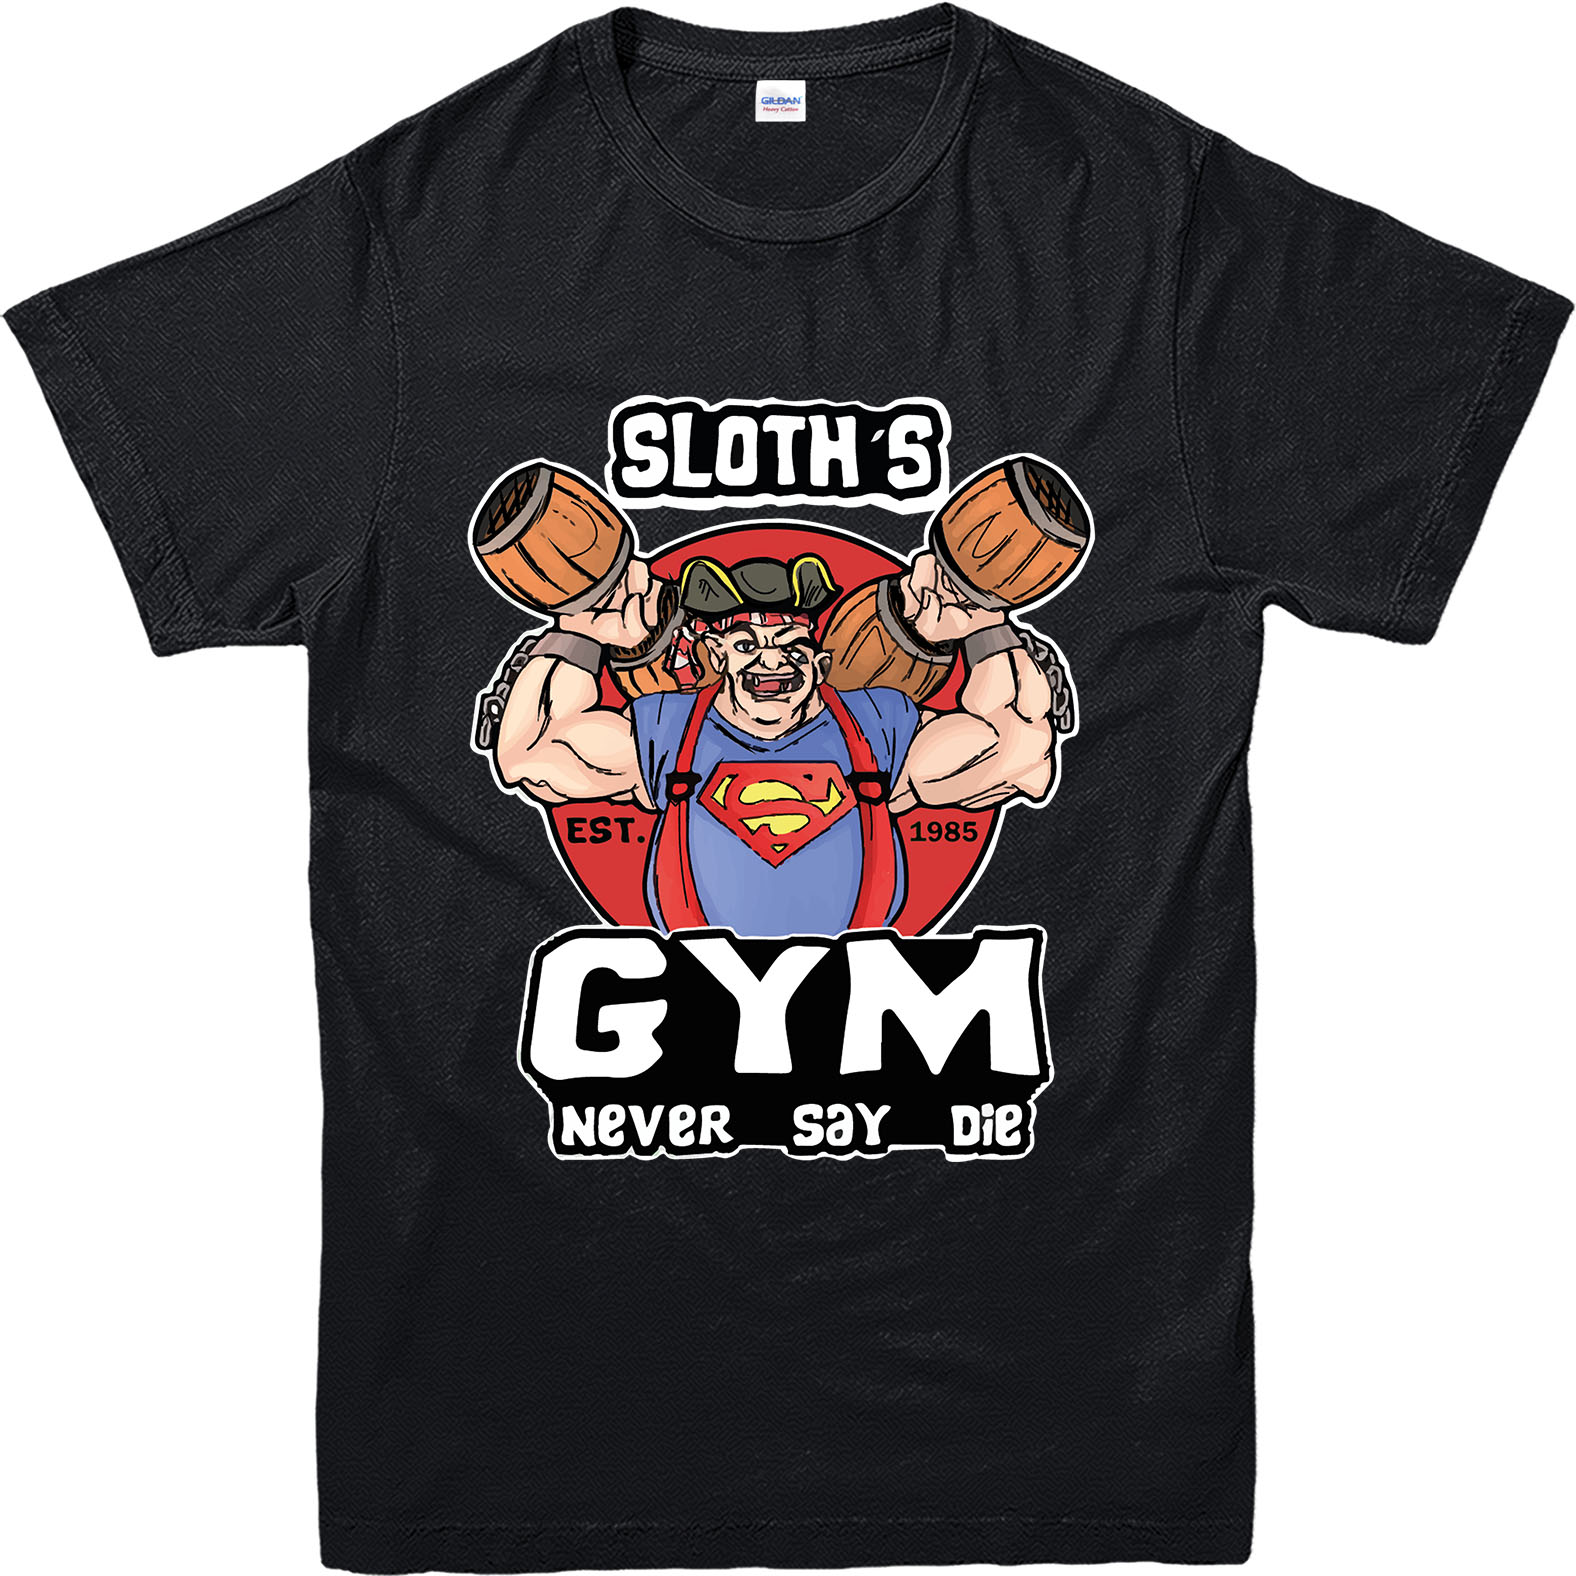 The goonies t shirt sloth gym t shirt inspired design for Best fitness t shirts